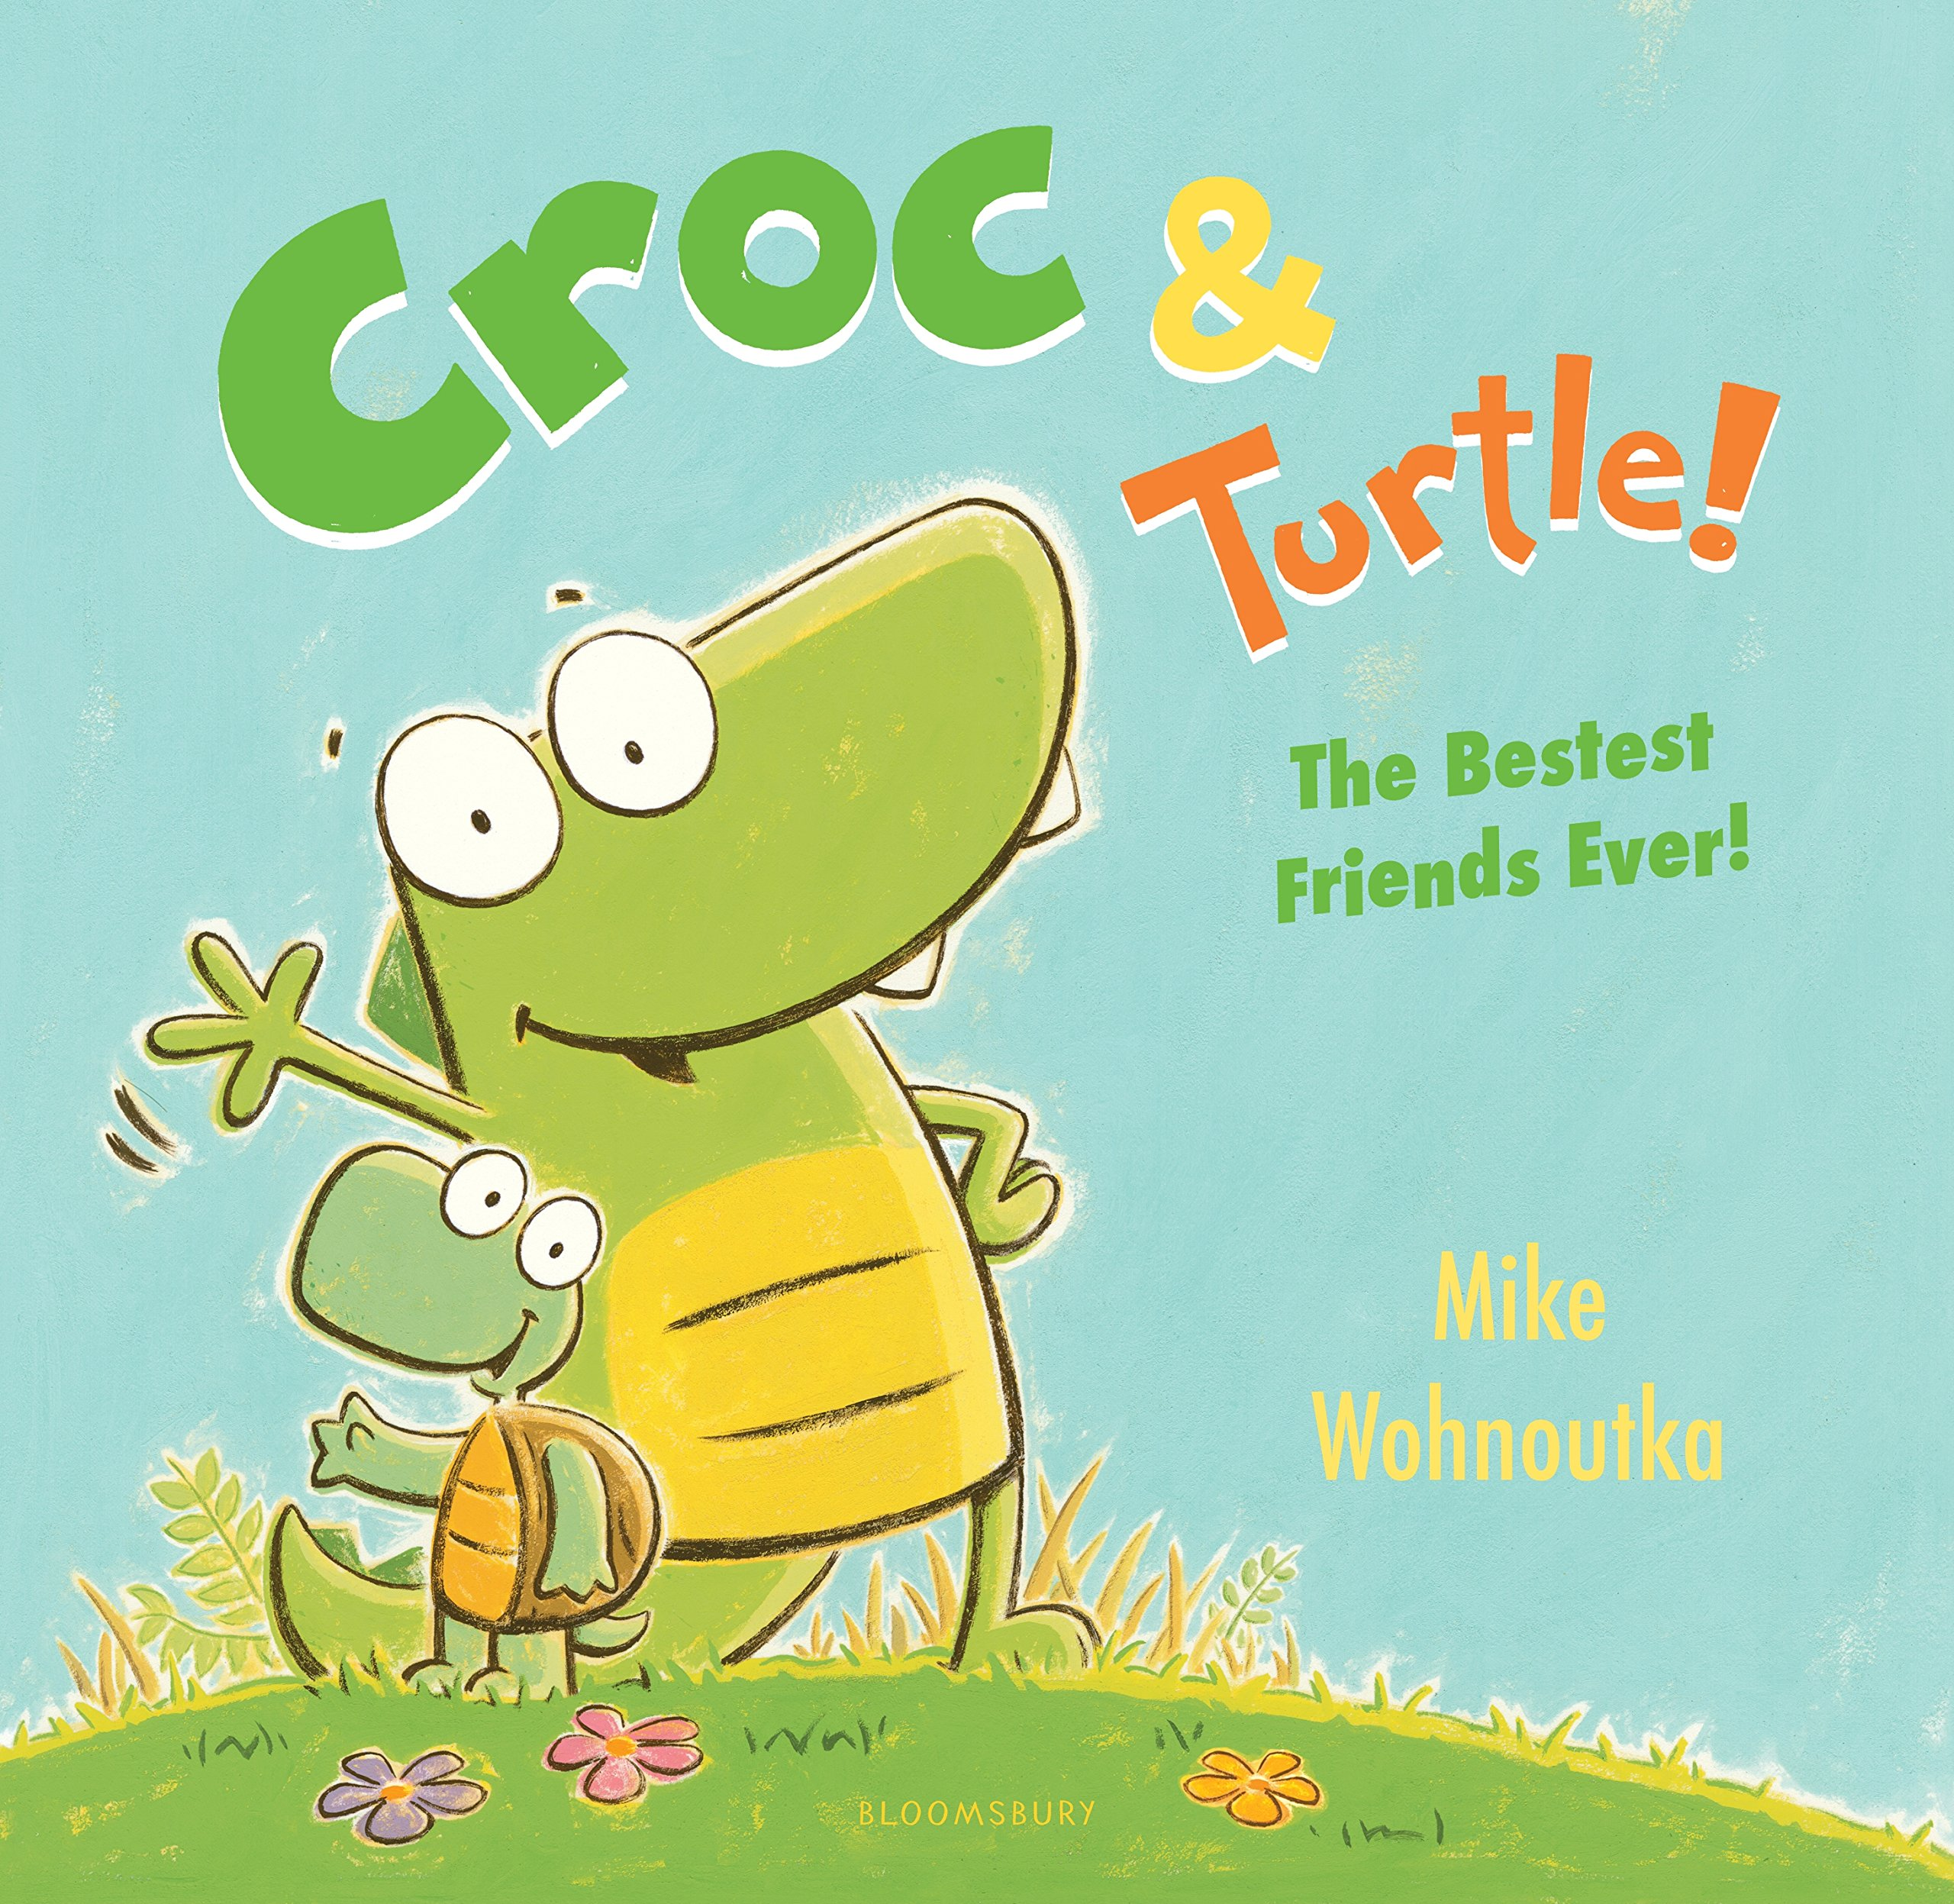 celebrate-picture-books-picture-book-review-croc-and-turtle-the-bestest-friends-ever-cover